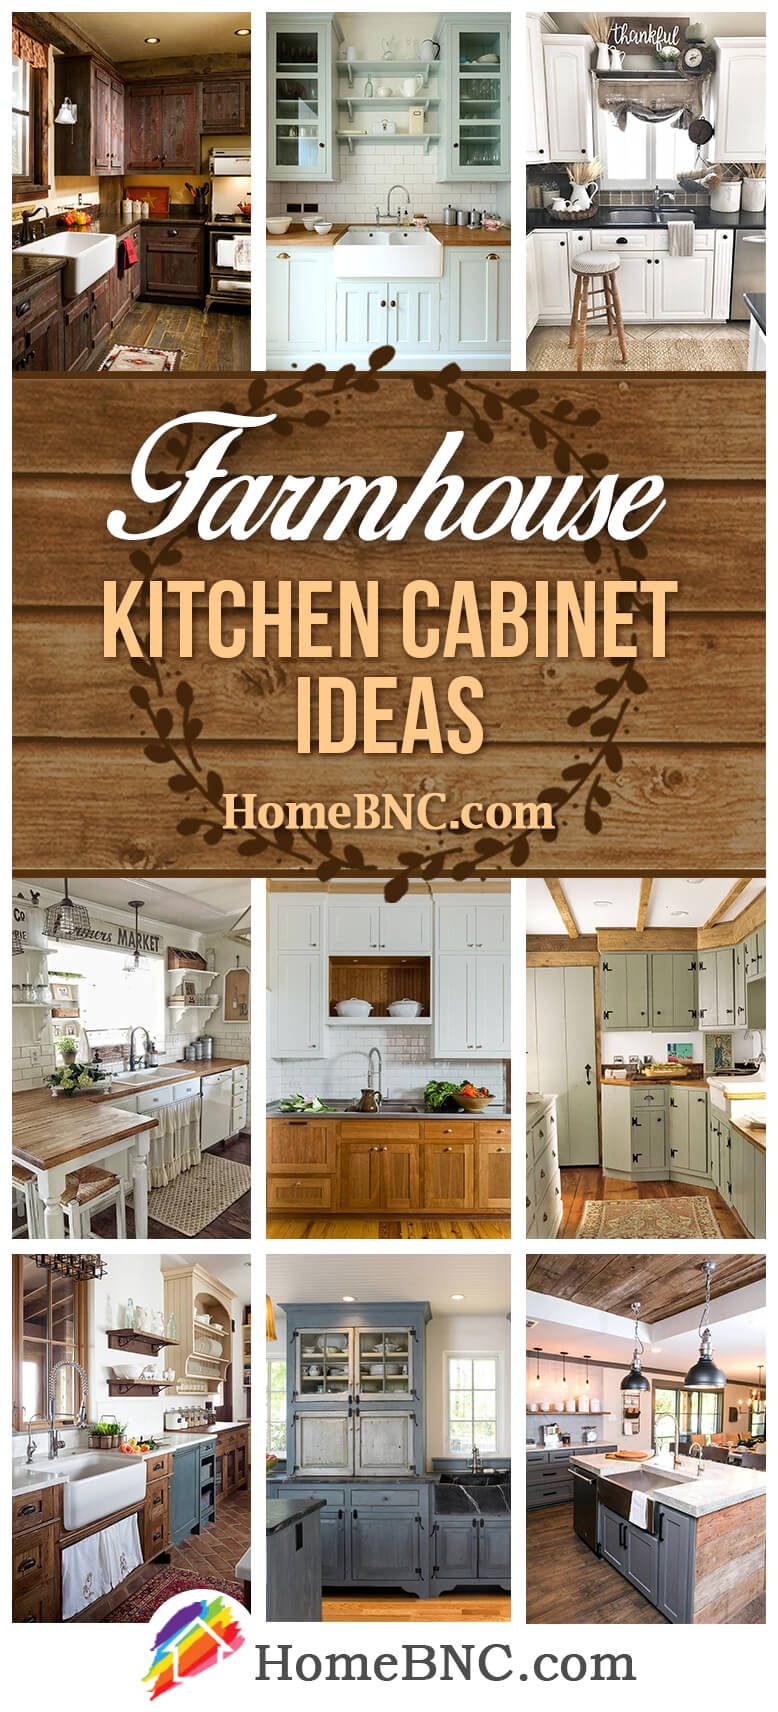 Farmhouse Kitchen Cabinet Ideas